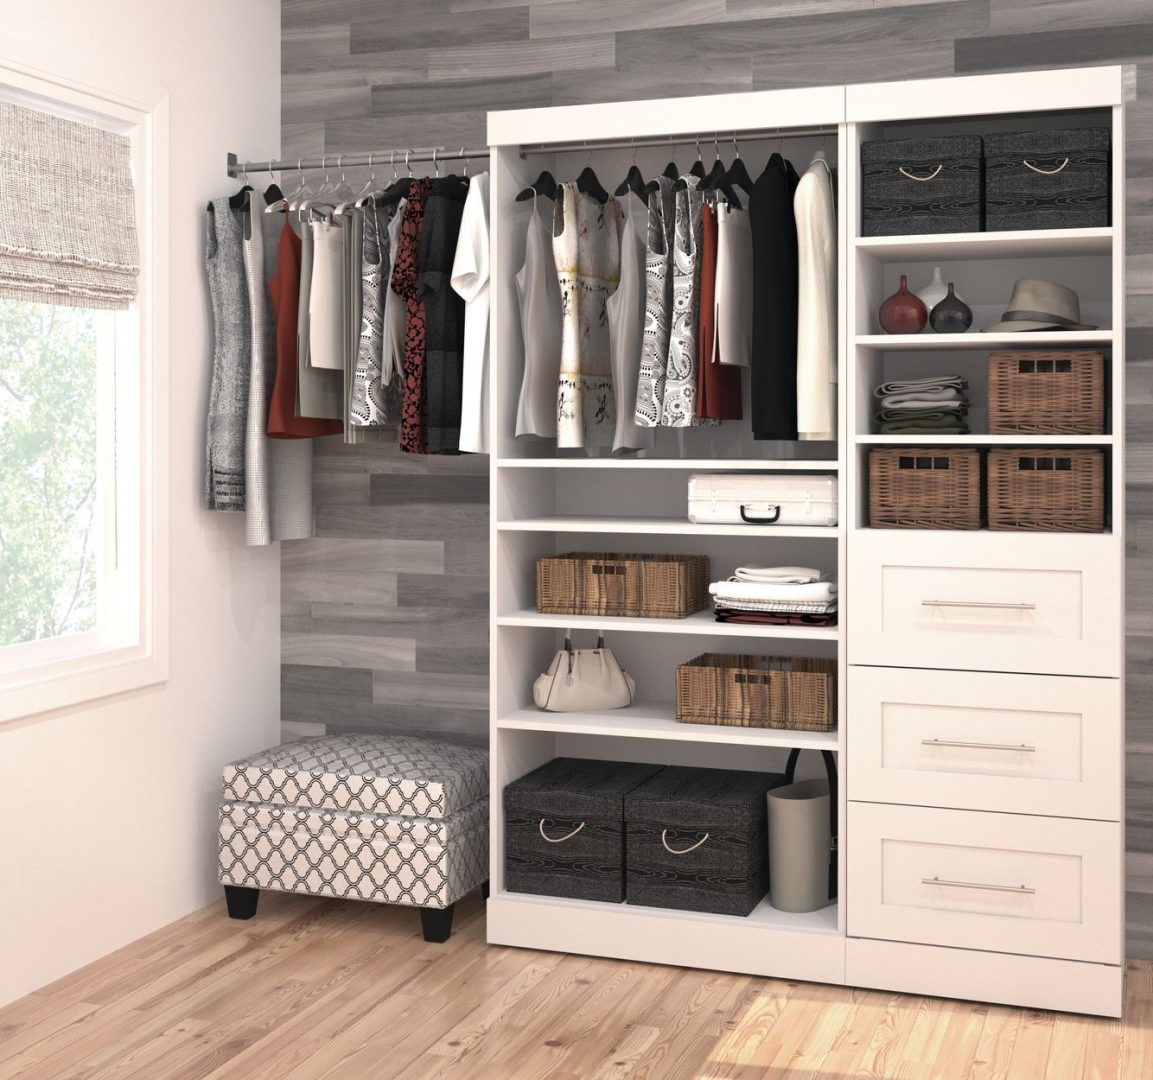 6 Tips to Properly Organize your Closet